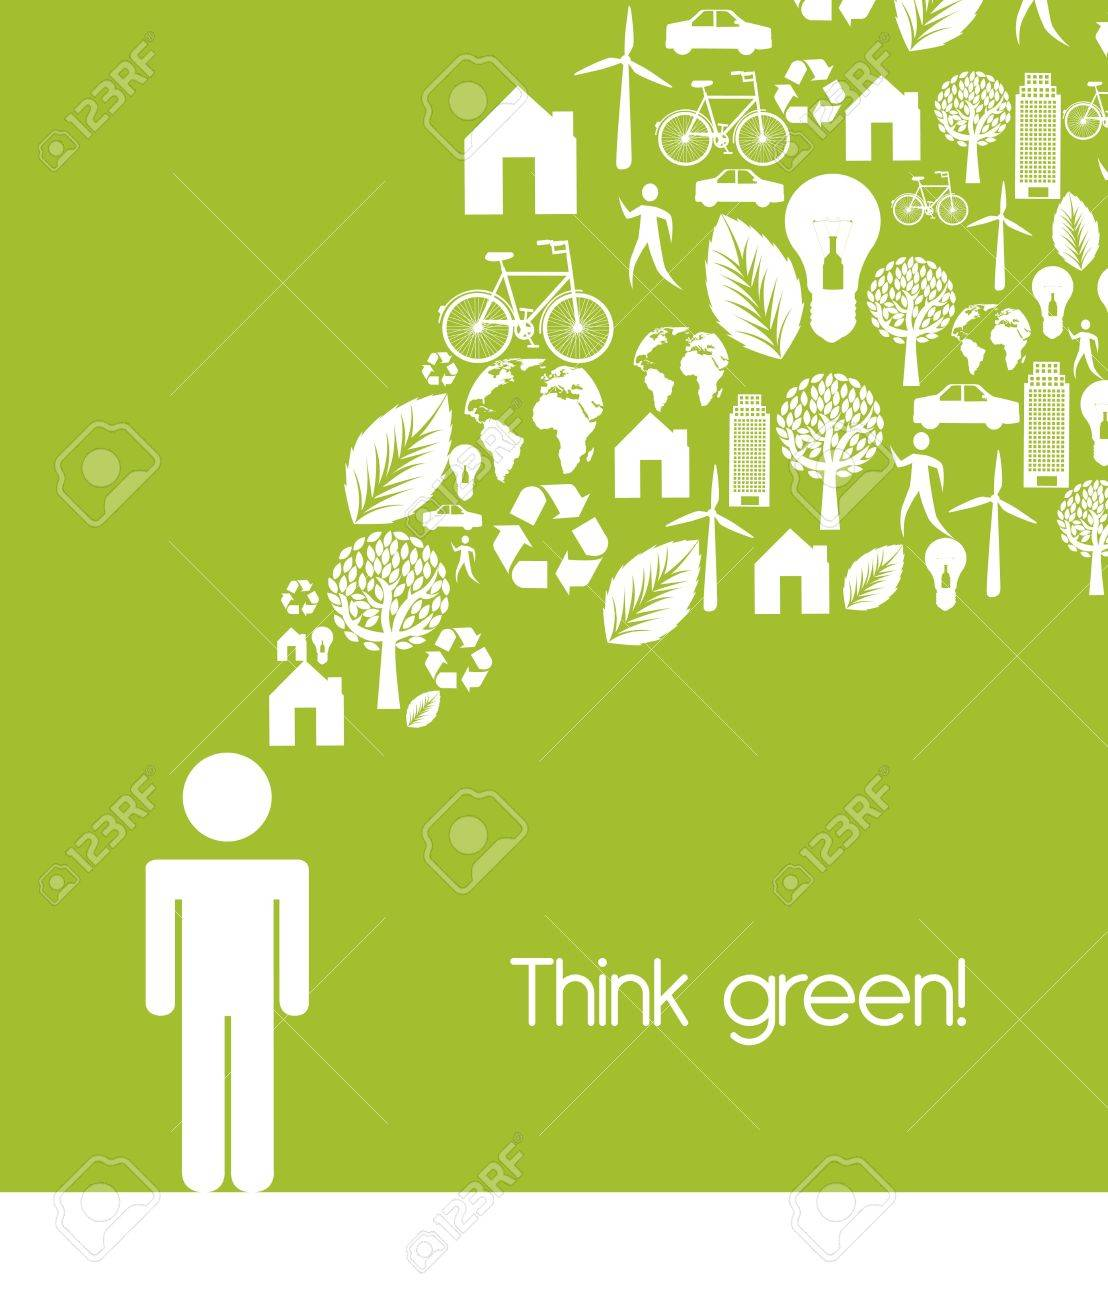 men sign with ecology icons, think green. - 15668151